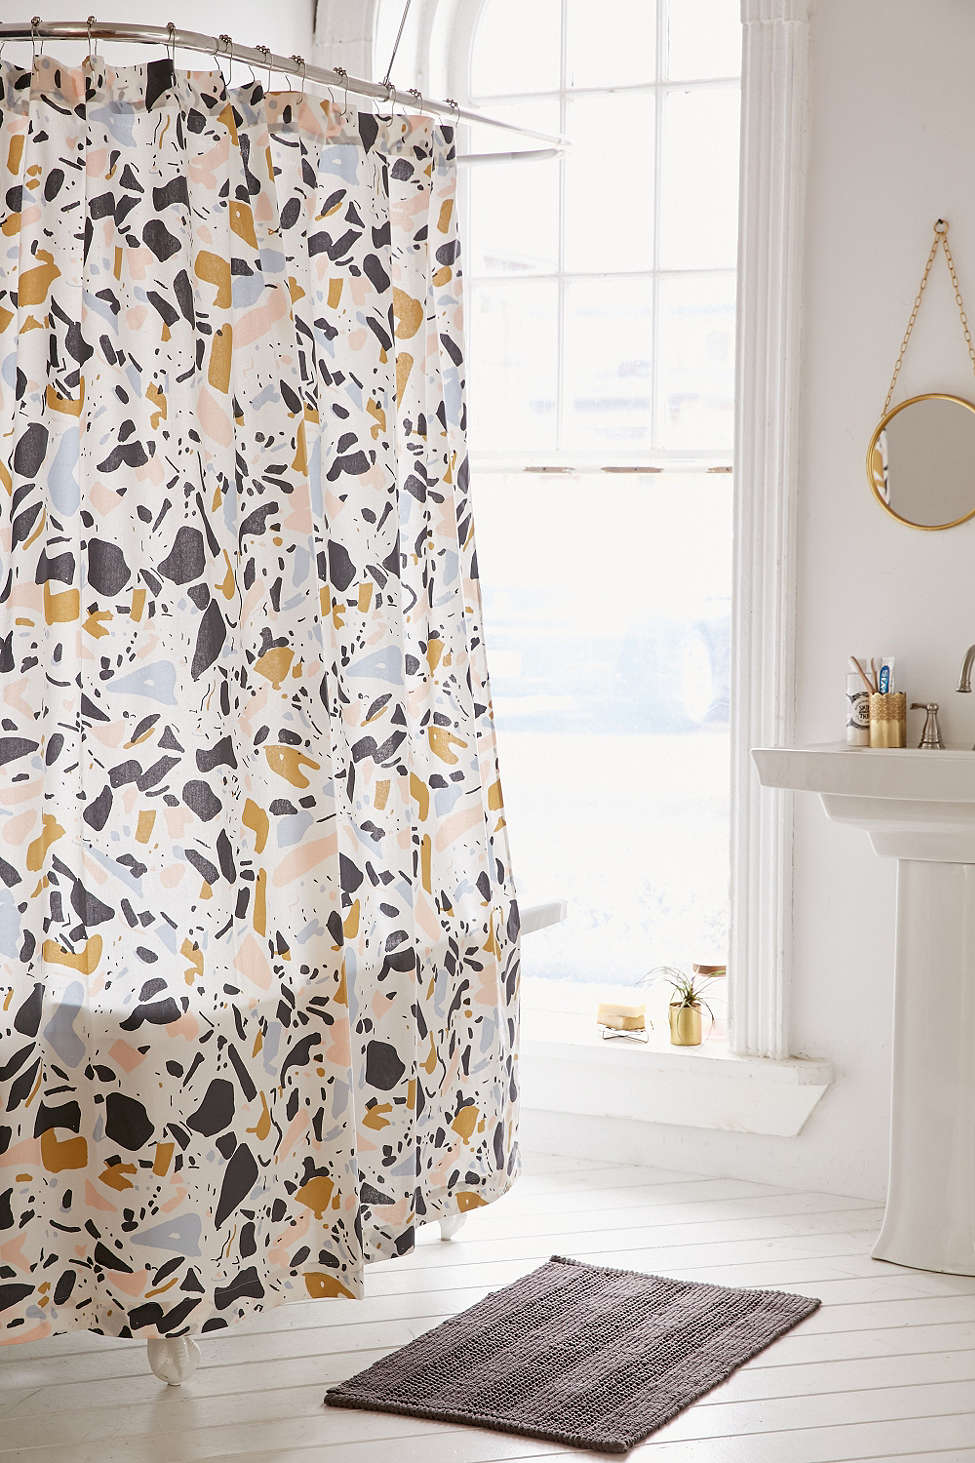 Terrazzo shower curtain from Urban Outfitters